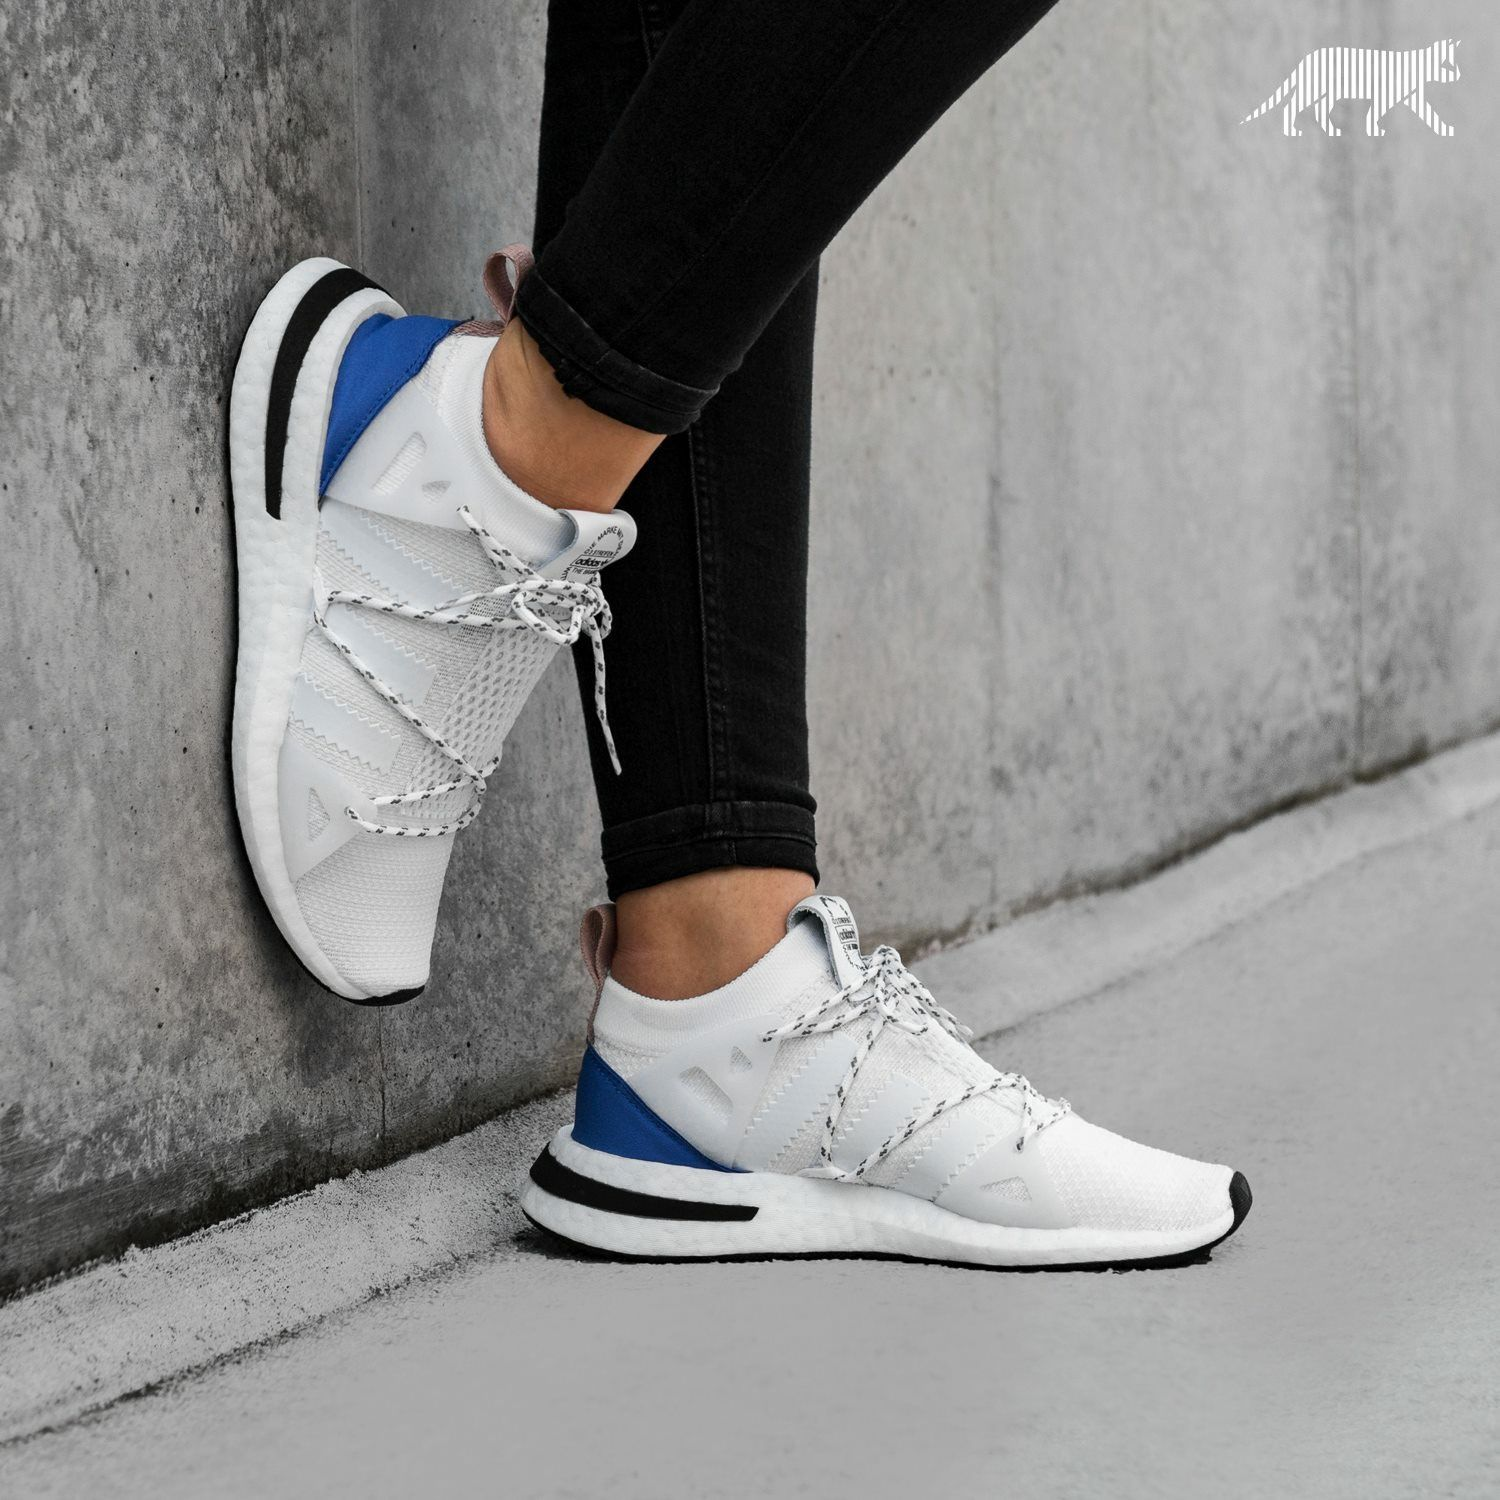 Arkyn Trainers In Blue - Grey adidas Originals 6aN6arKnTk